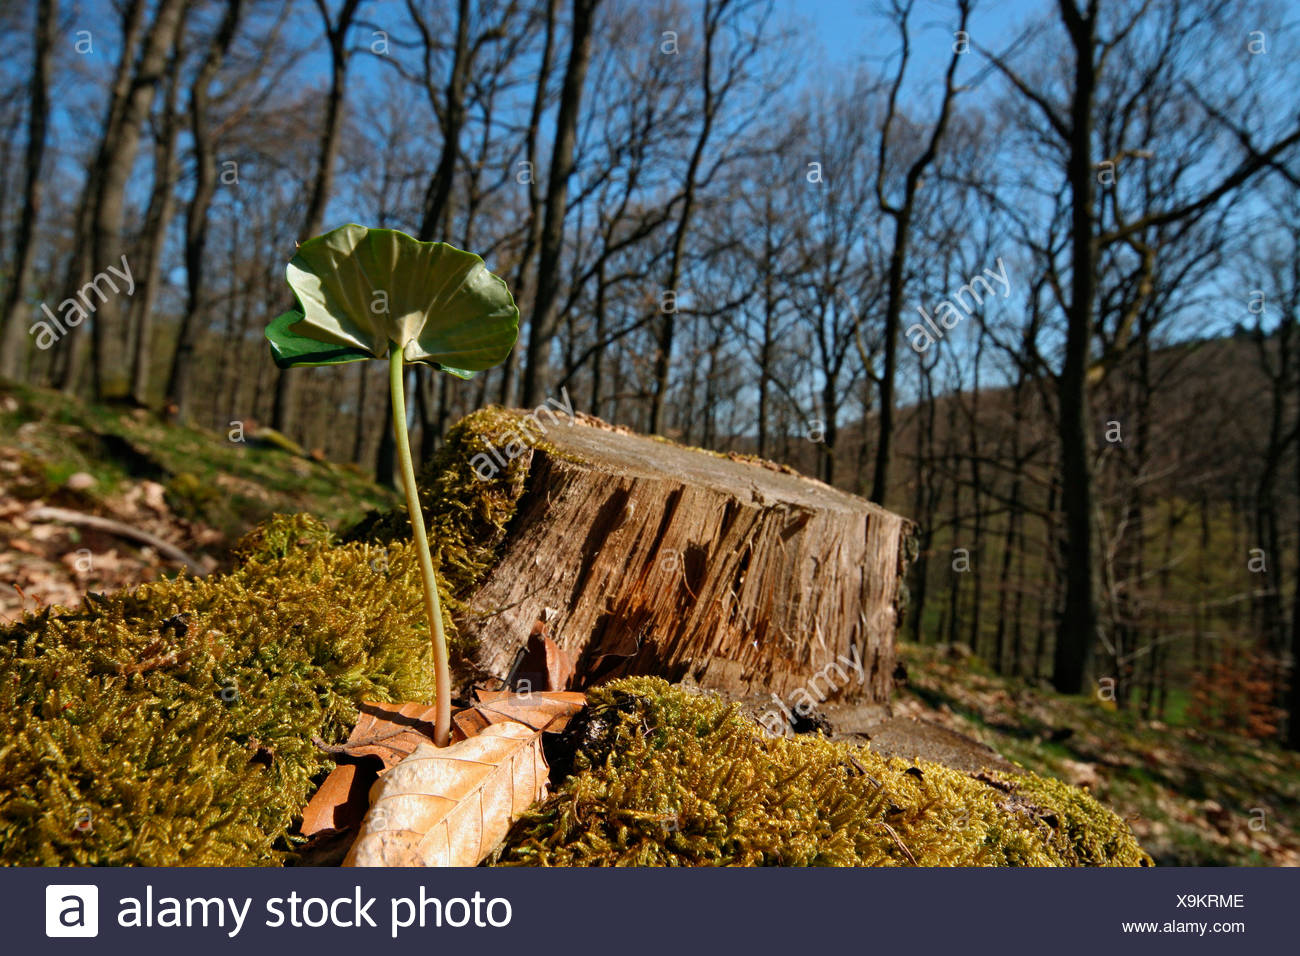 Beech Seedling in front of a stump in a forest - Stock Image